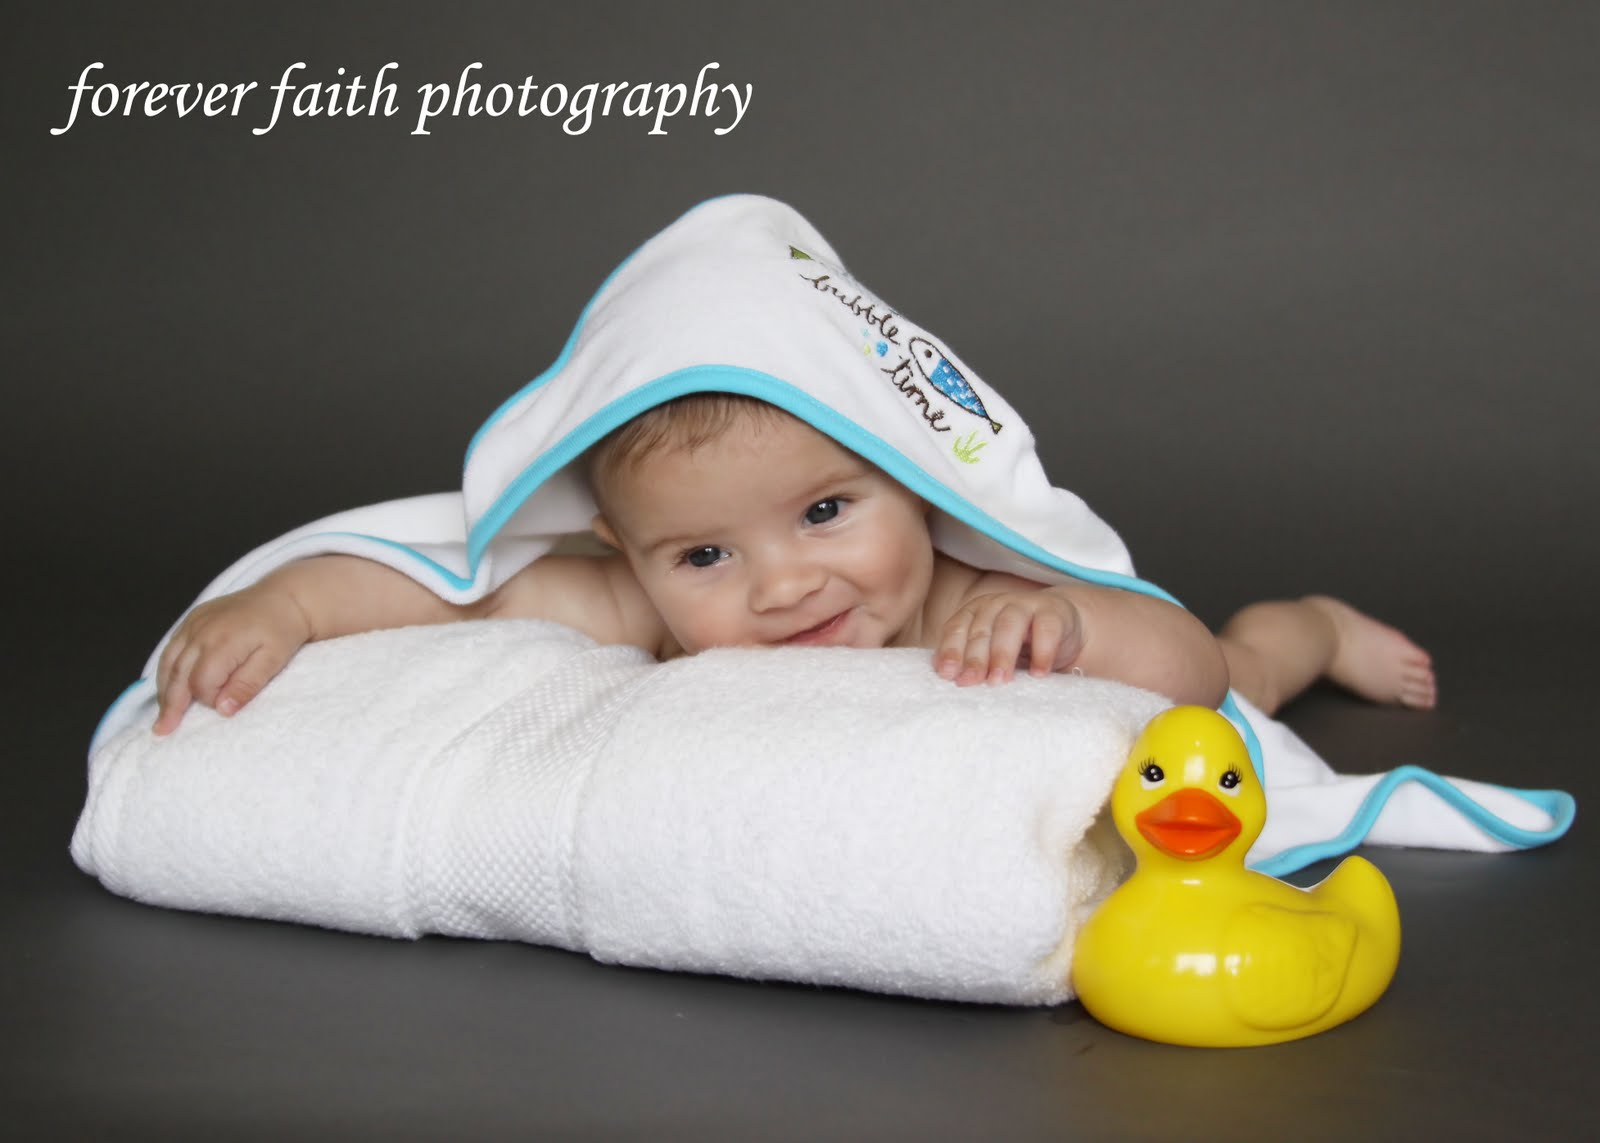 forever faith photography baby n s 3 month photos